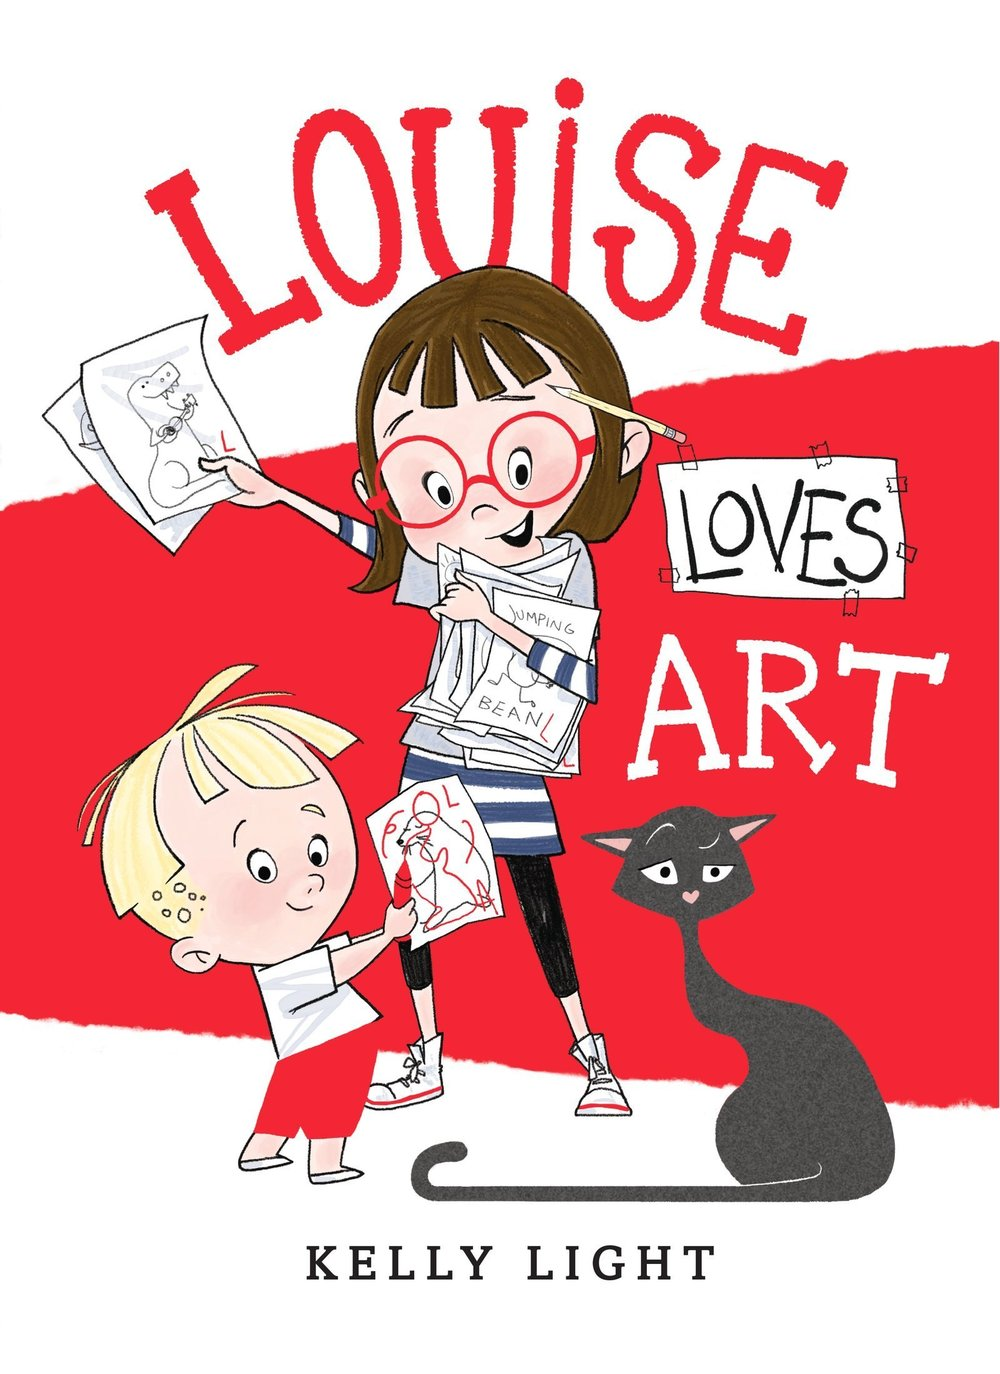 LOUISE LOVES ART, by Kelly Light